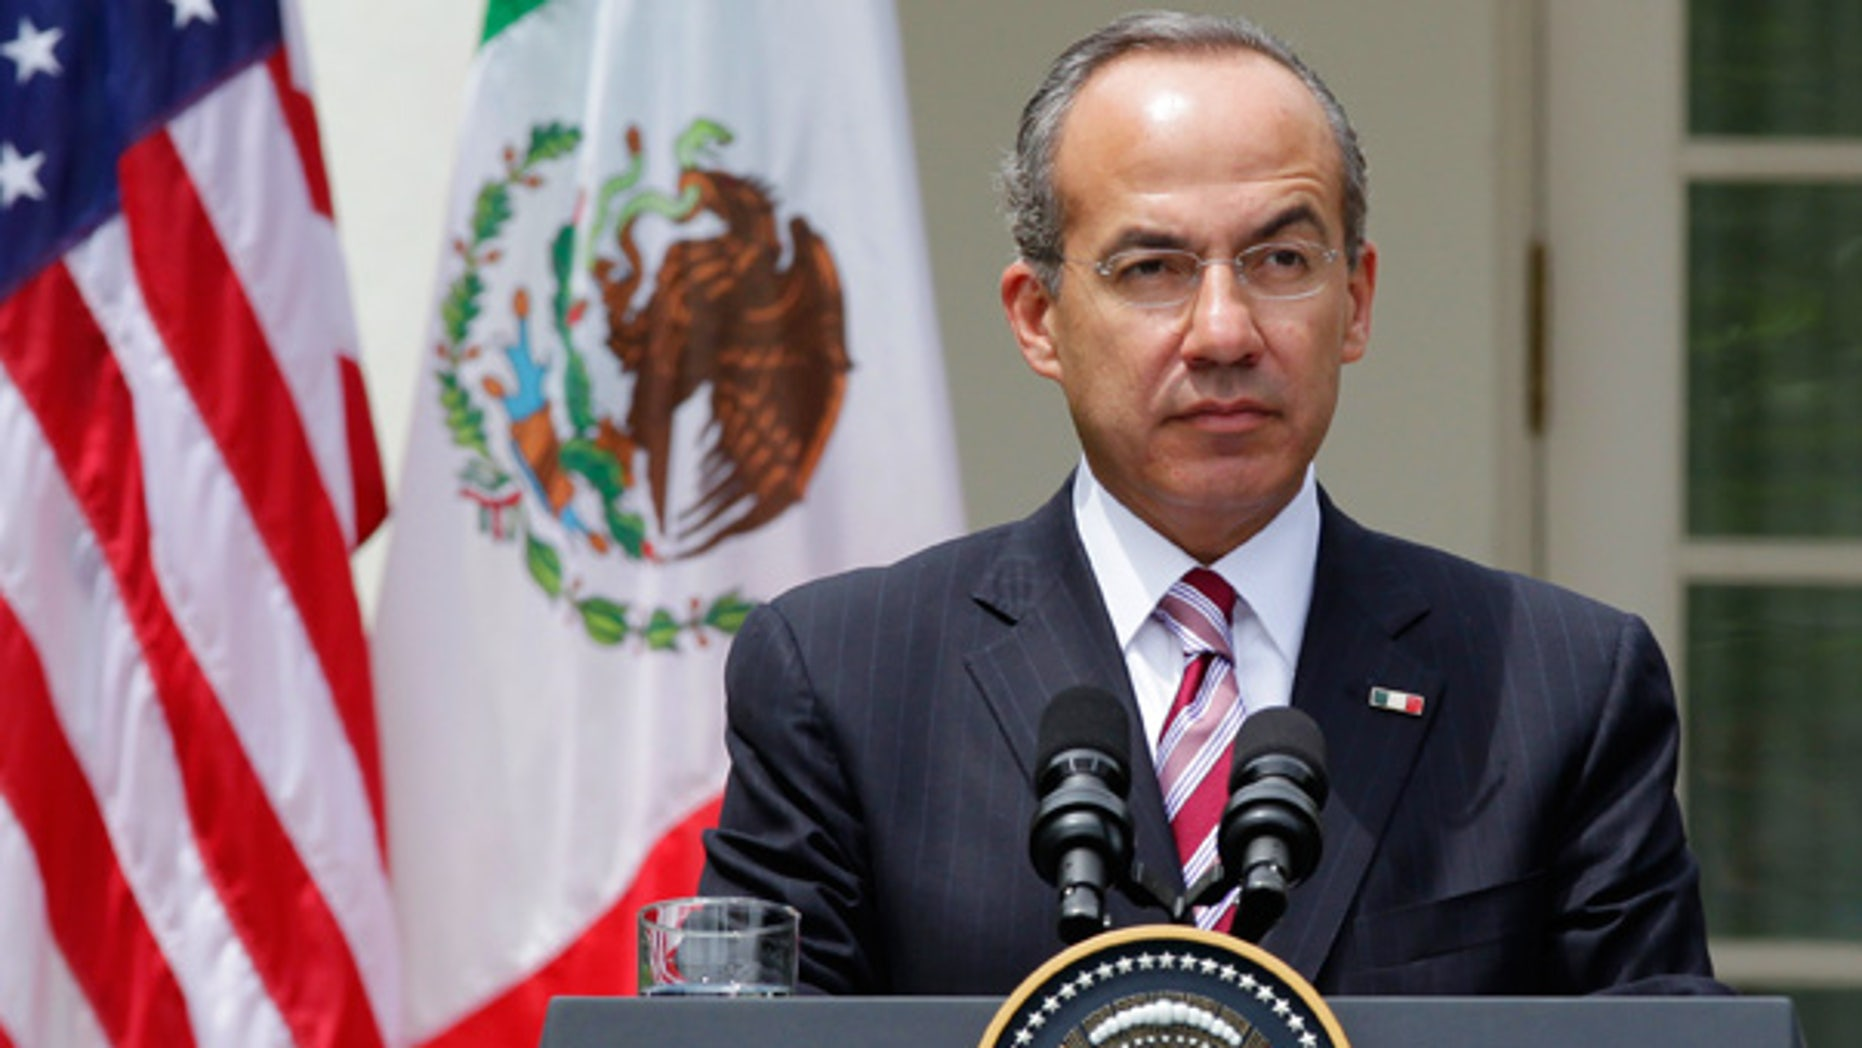 May 19: Mexico's President Felipe Calderon at a joint news conference with President Obama at the White House.